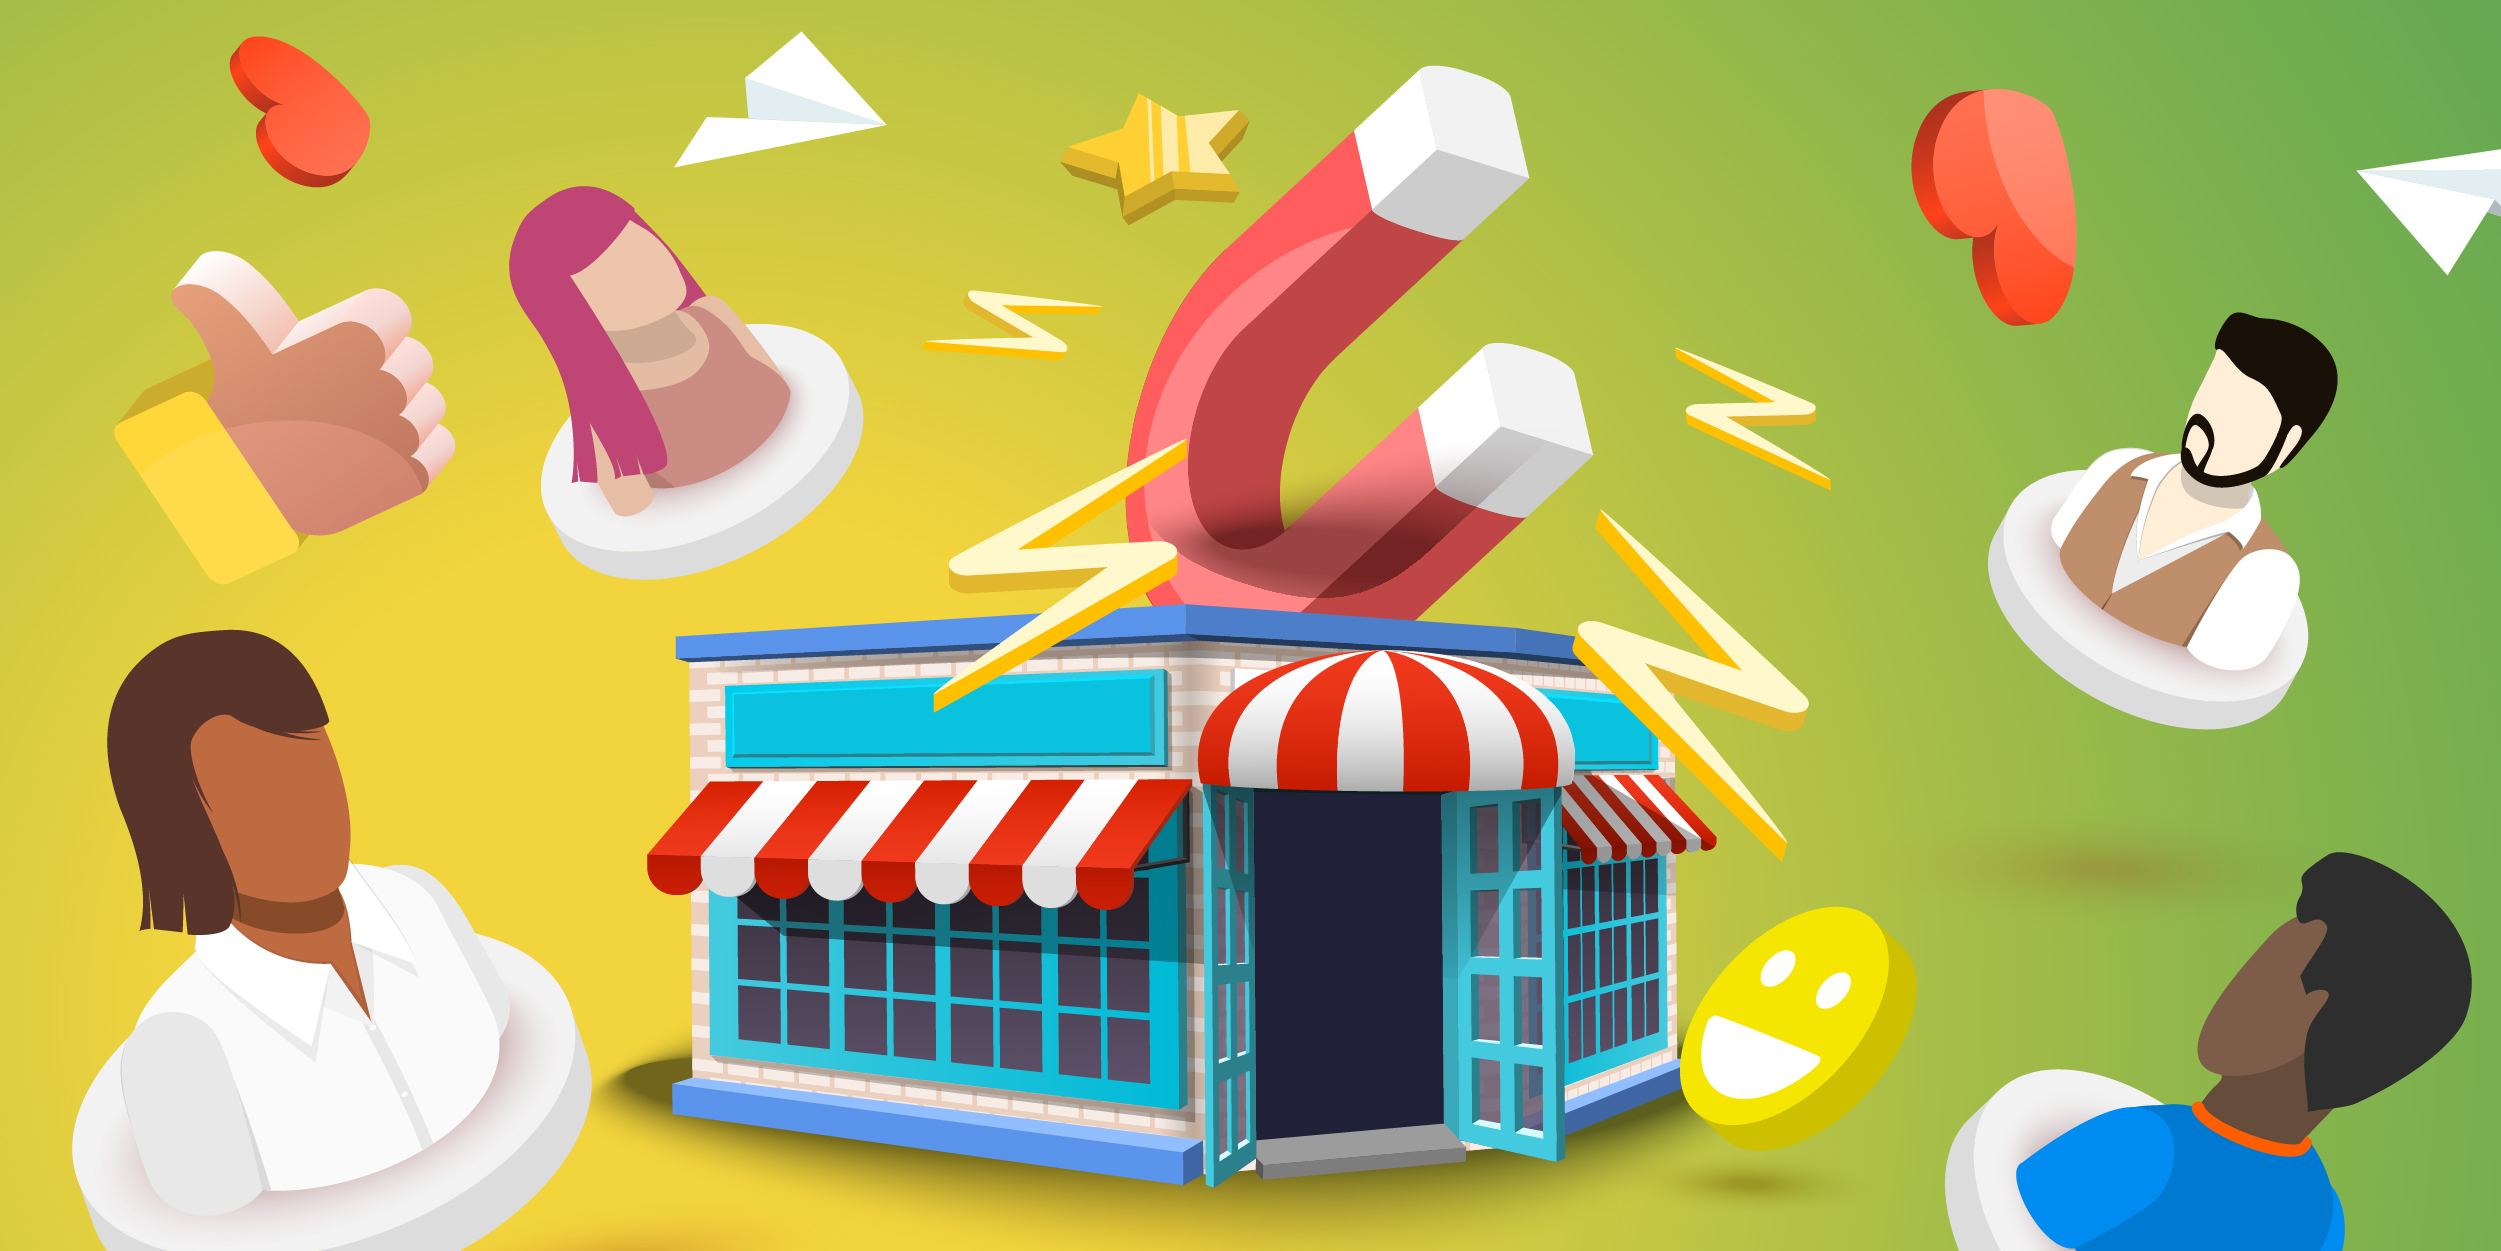 Illustration of a storefront with a magnet coming out of the top attracting people towards it, symbolizing inbound marketing.